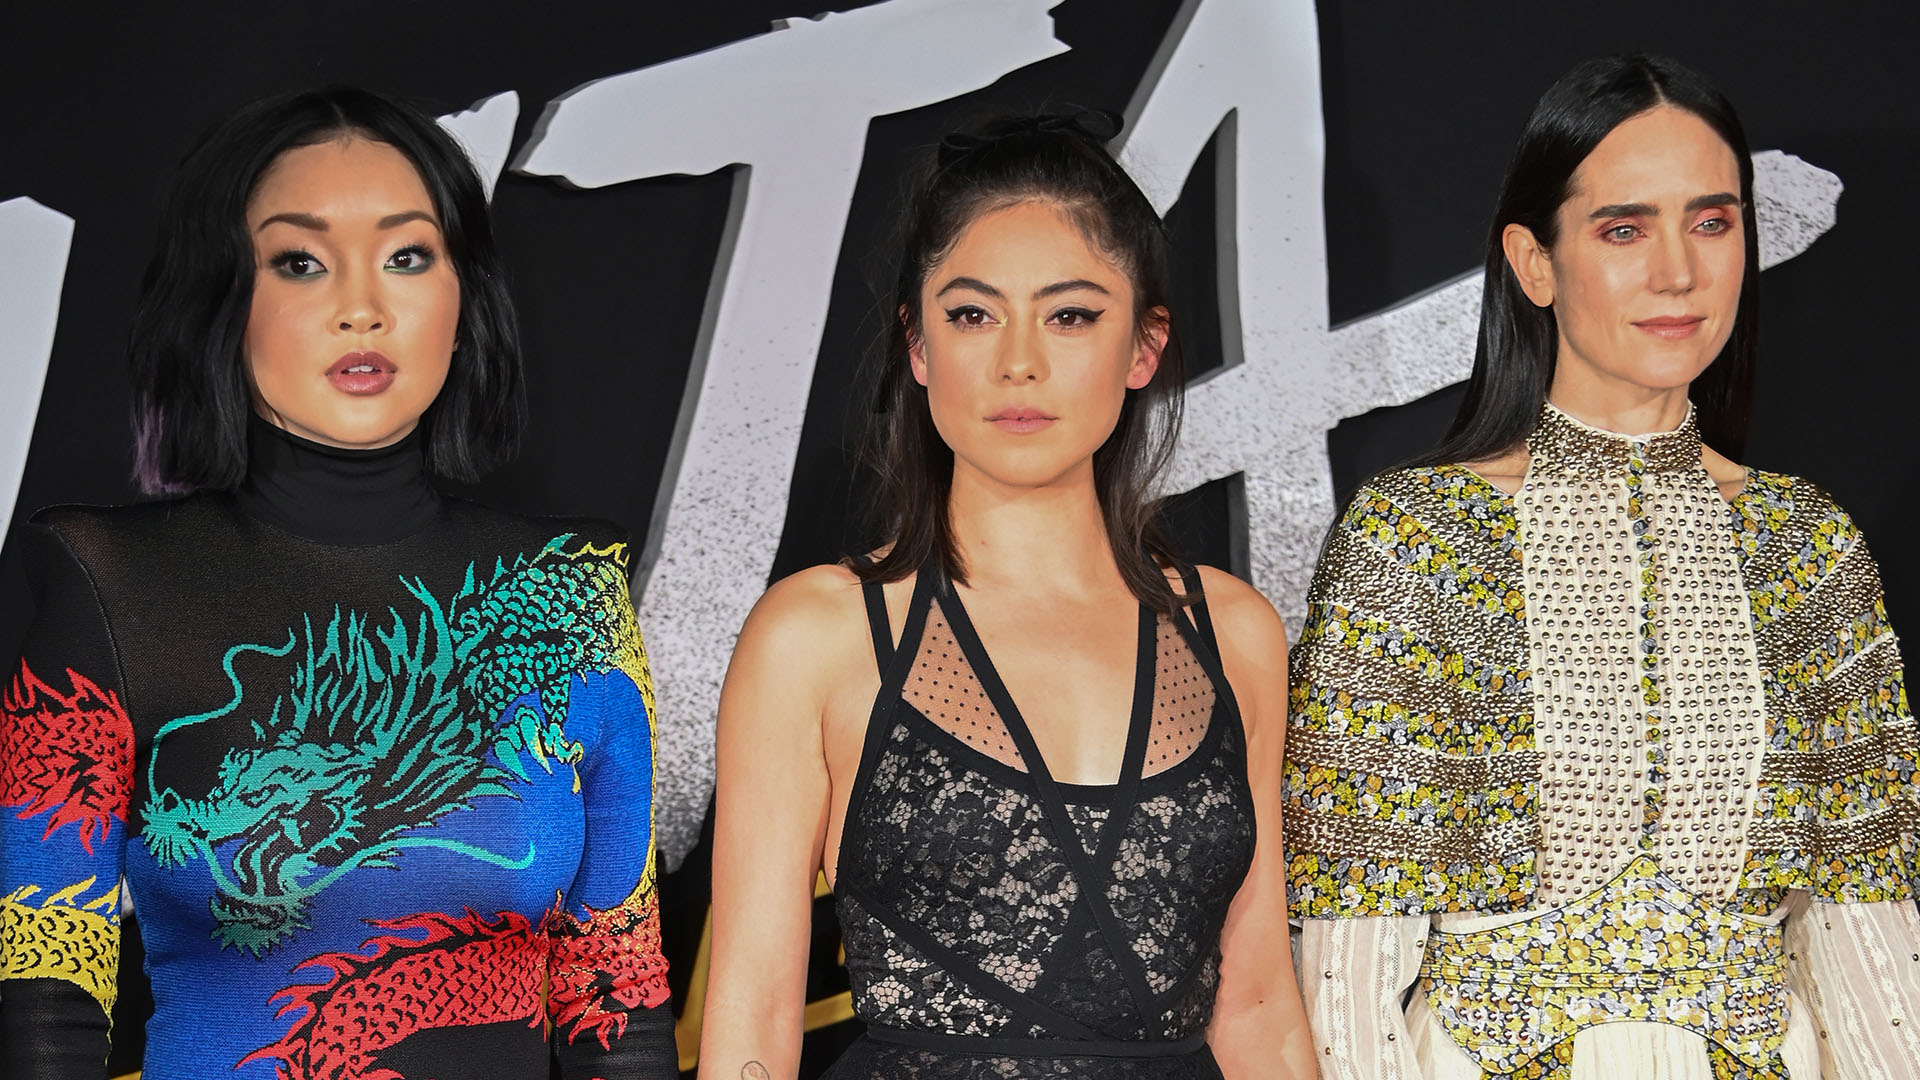 Cautivantes: Lana Condor, Rosa Salazar y Jennifer Connelly /// Fotos: AFP